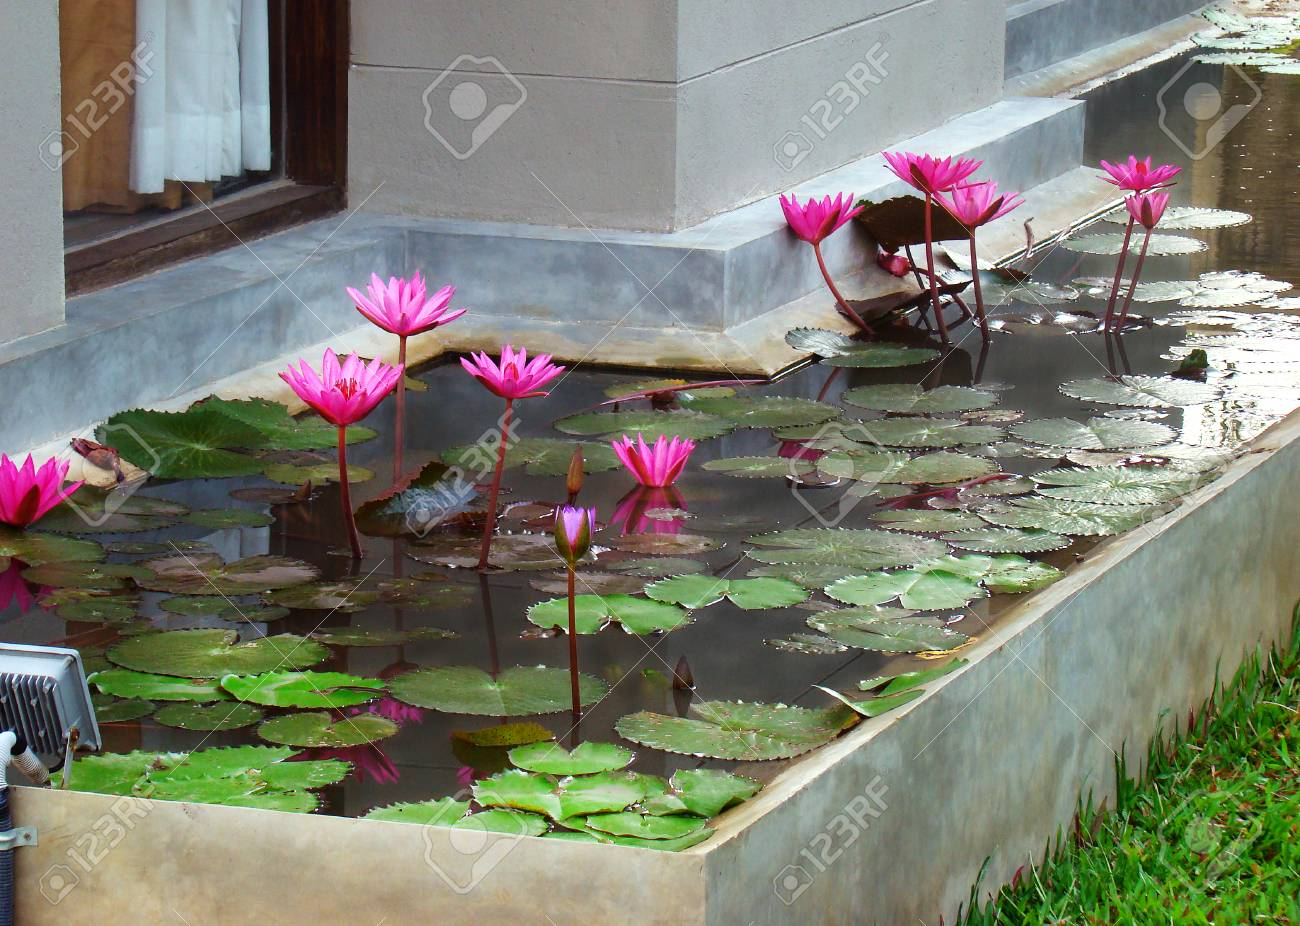 Landscaping design, beautification refine and planting of a yard plot near house - lotus flowers buds grow and blooming in Decorative pond. - 101922427